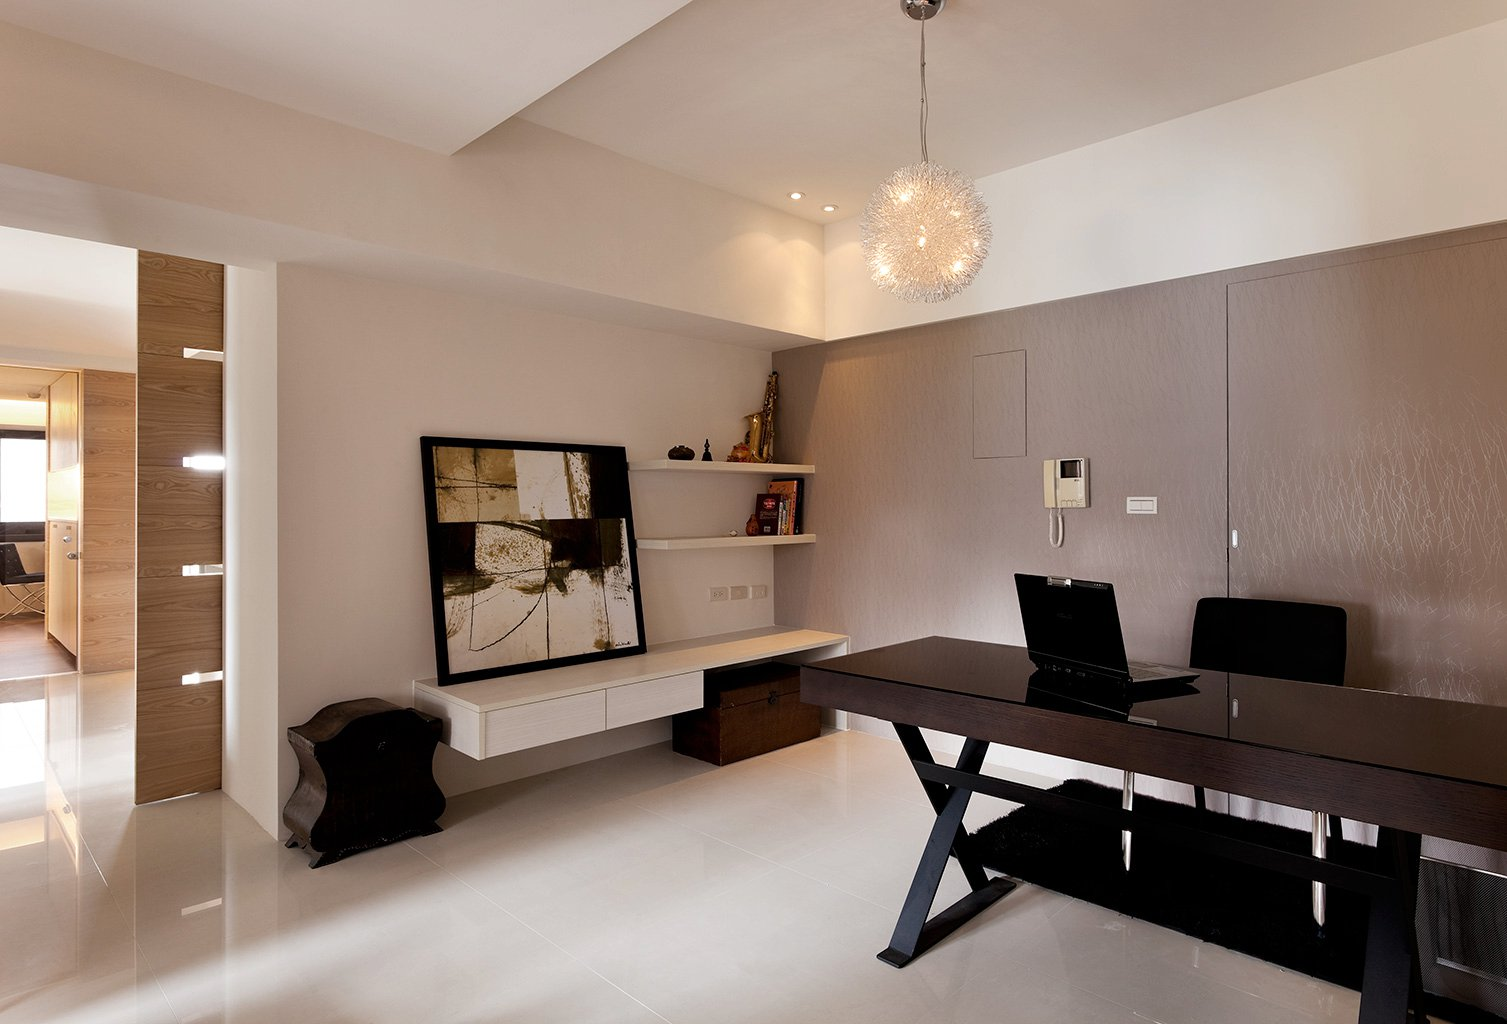 Contemporary Home Office Design Ideas: Modern Minimalist Decor With A Homey Flow